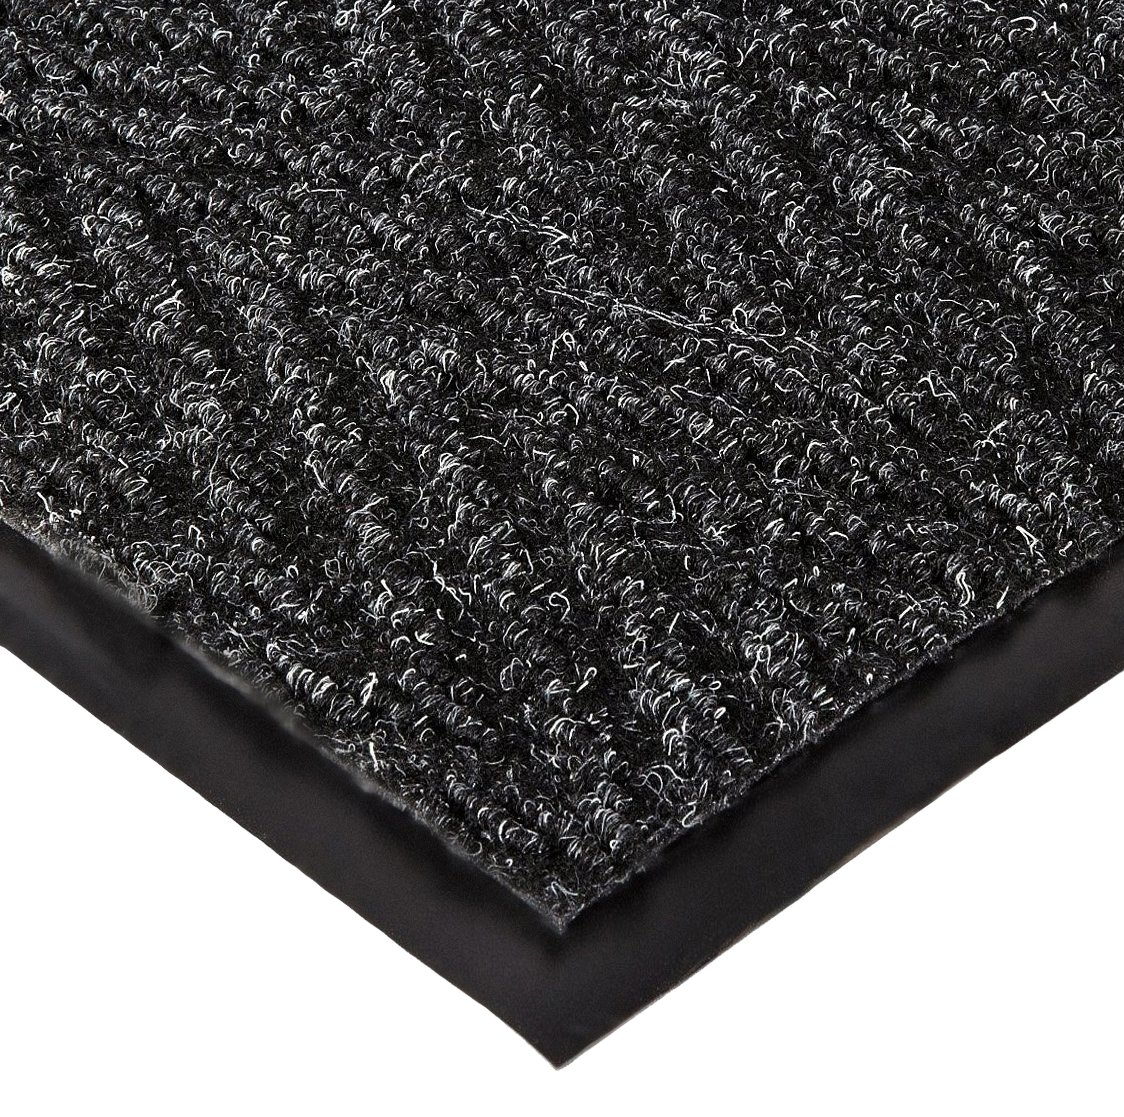 NoTrax 105 Chevron Entrance Mat, for Lobbies and Indoor Entranceways, 3' Width x 5' Length x 5/16'' Thickness, Charcoal